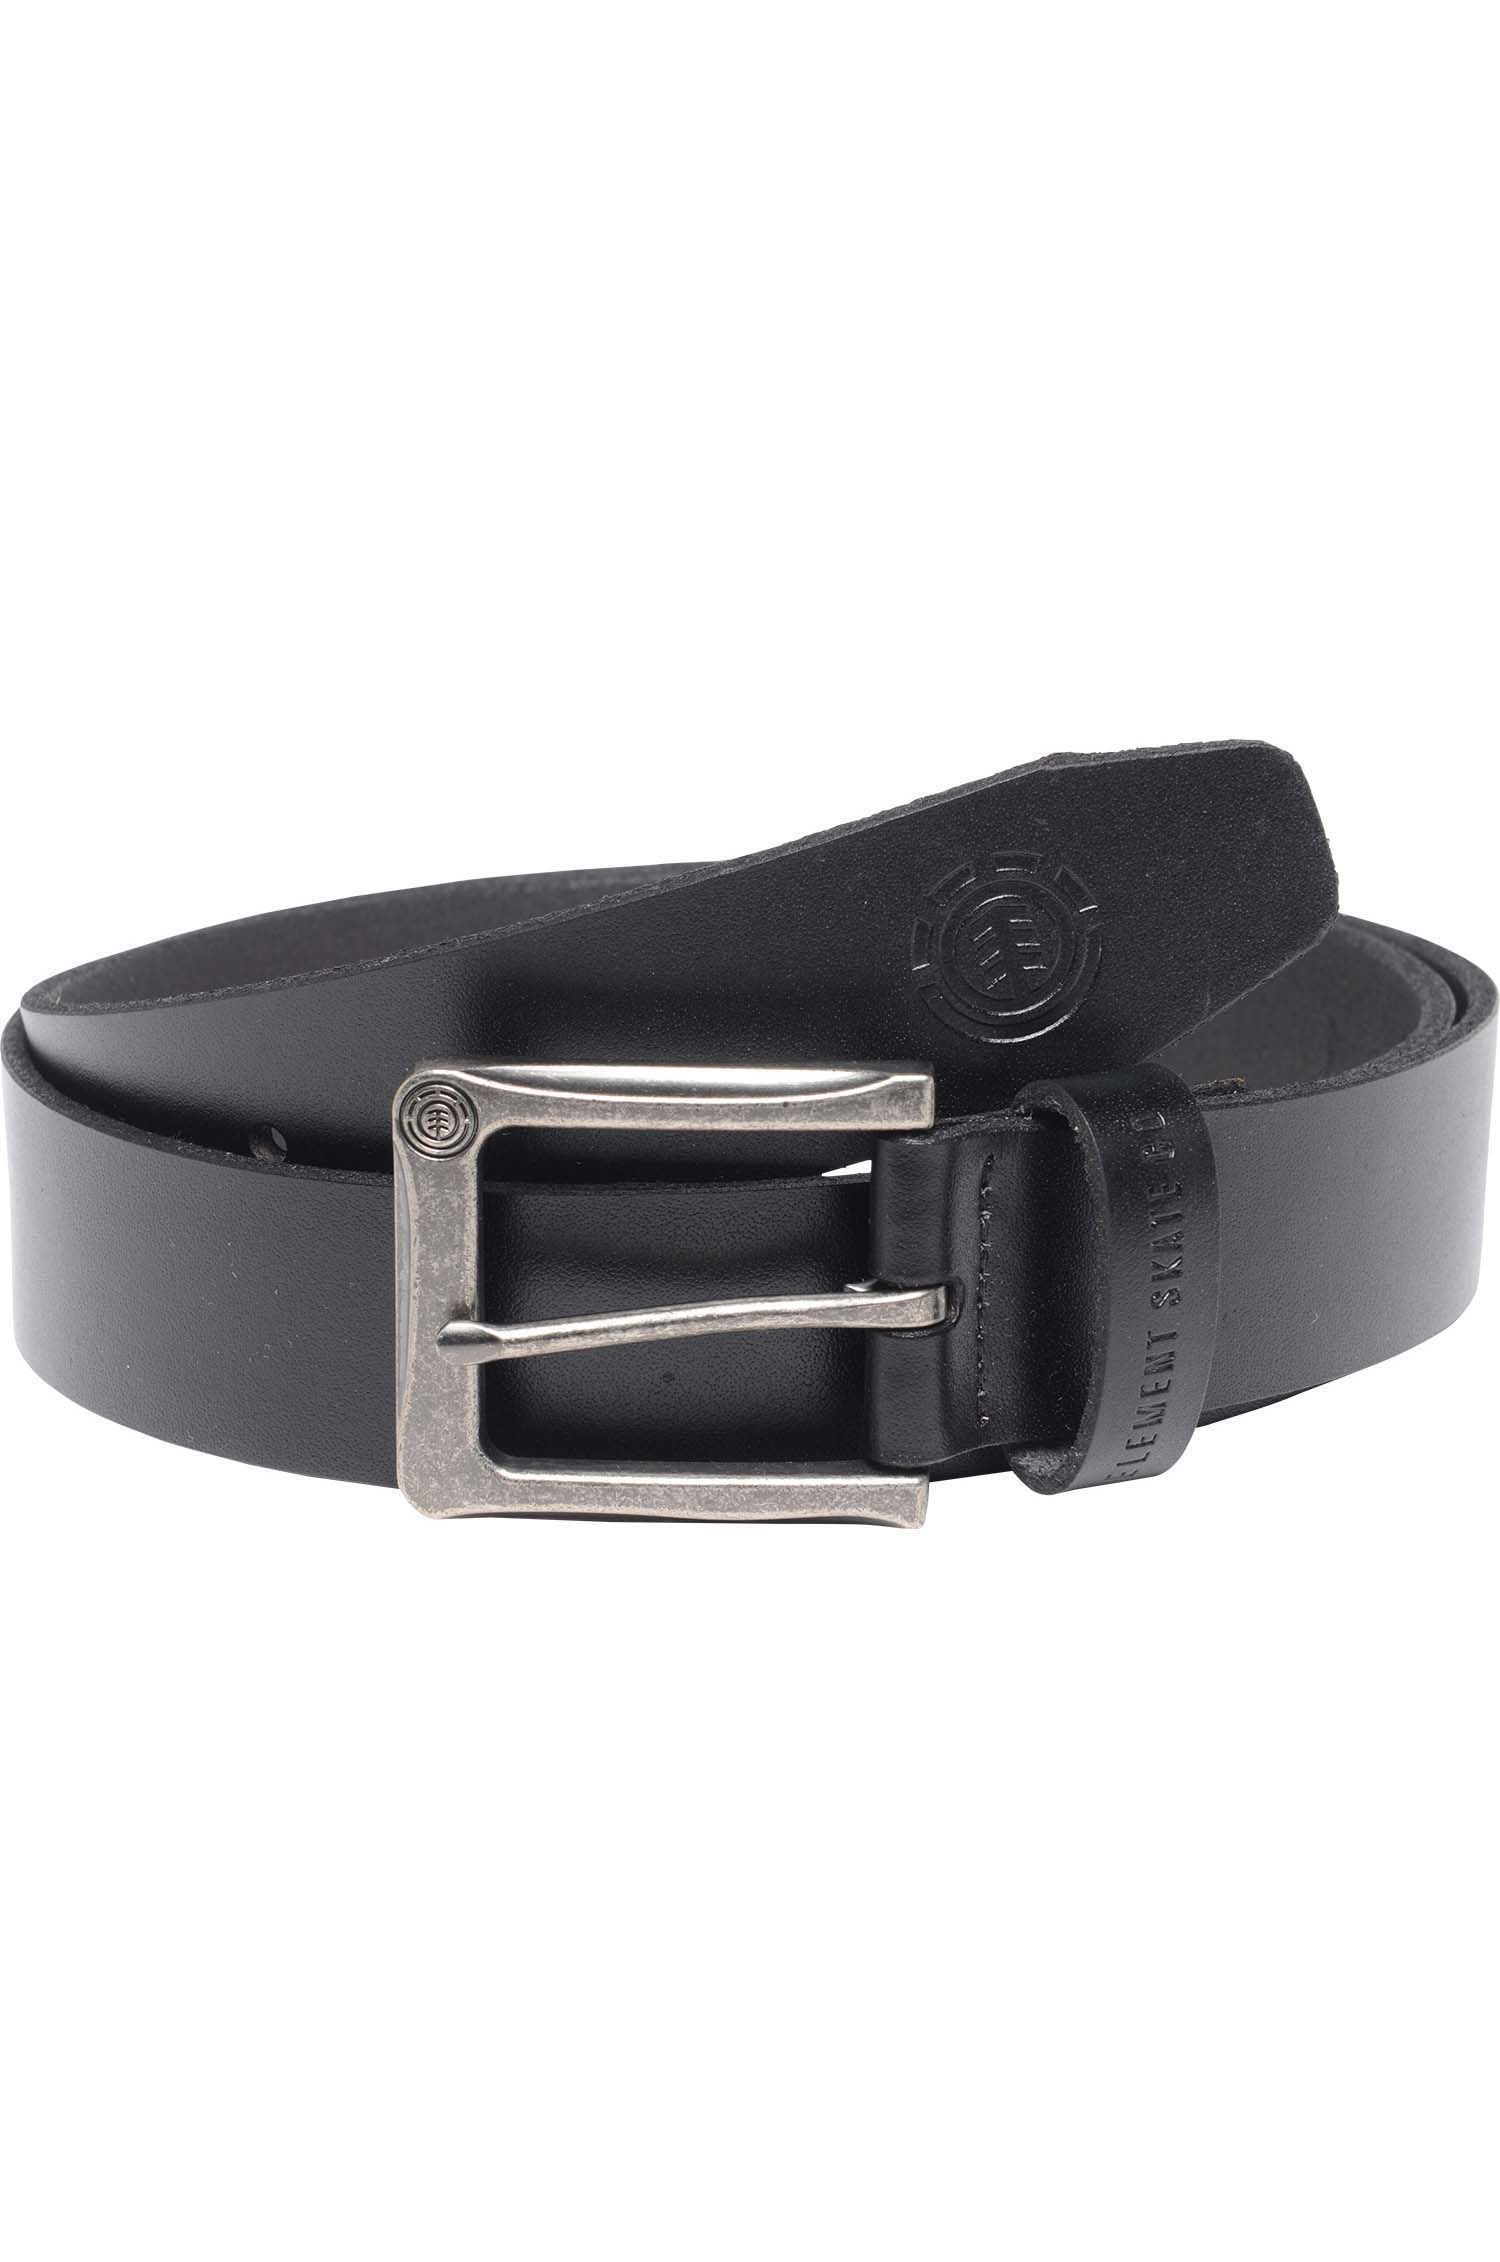 Cinto Pele Element POLOMA BELT Black